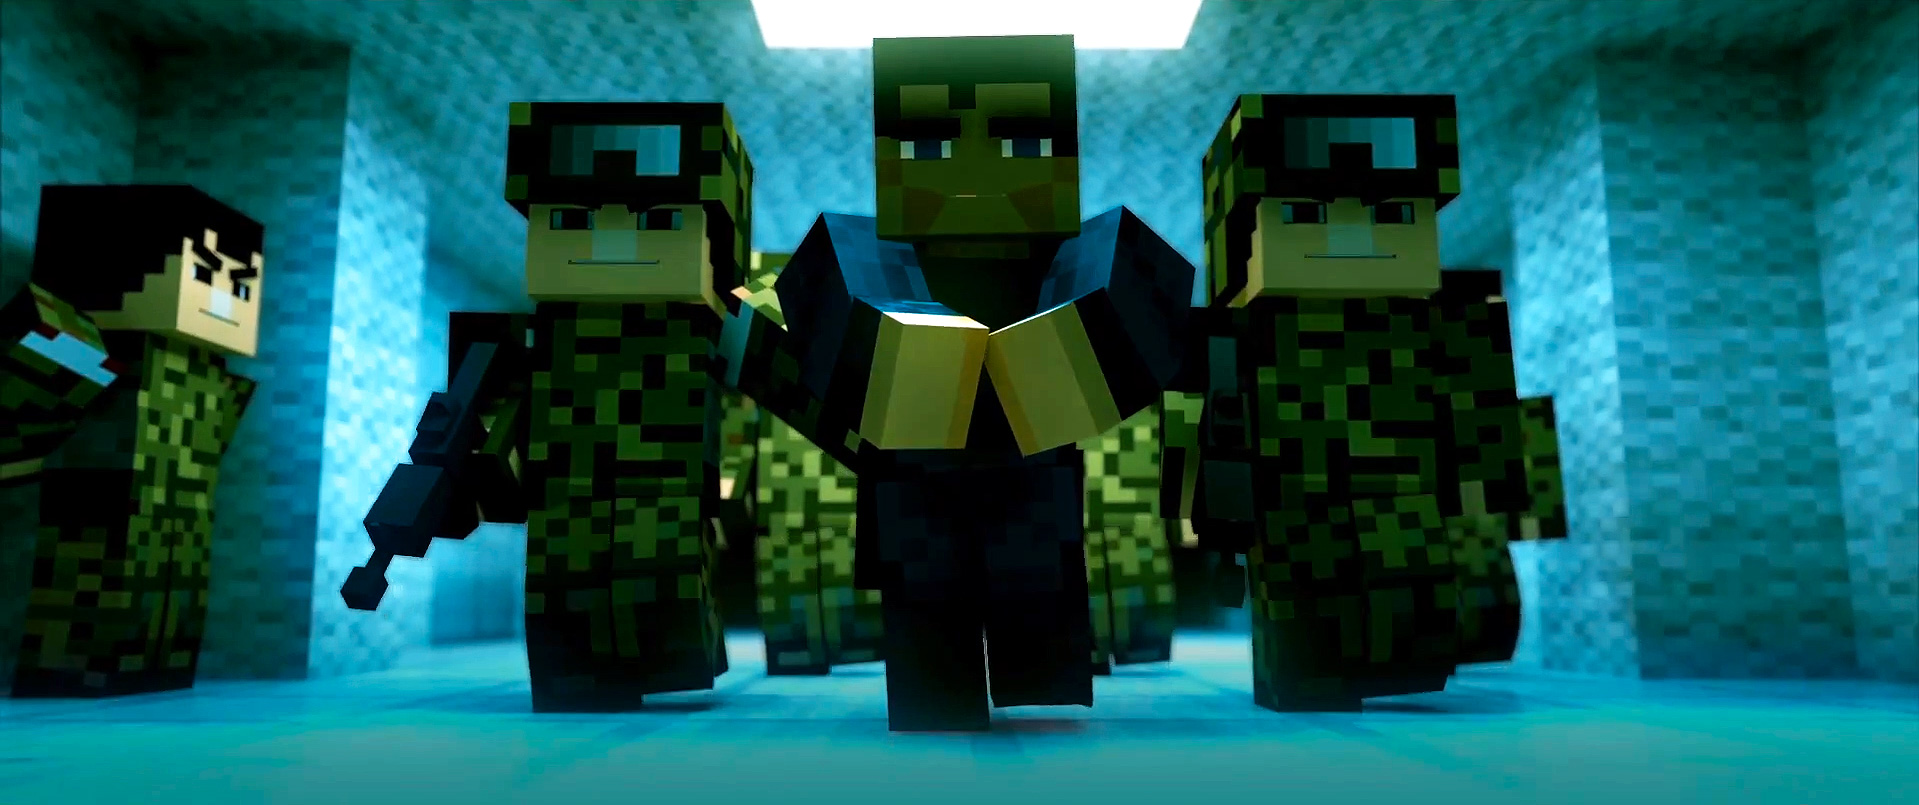 It's Official: Microsoft is Buying Minecraft